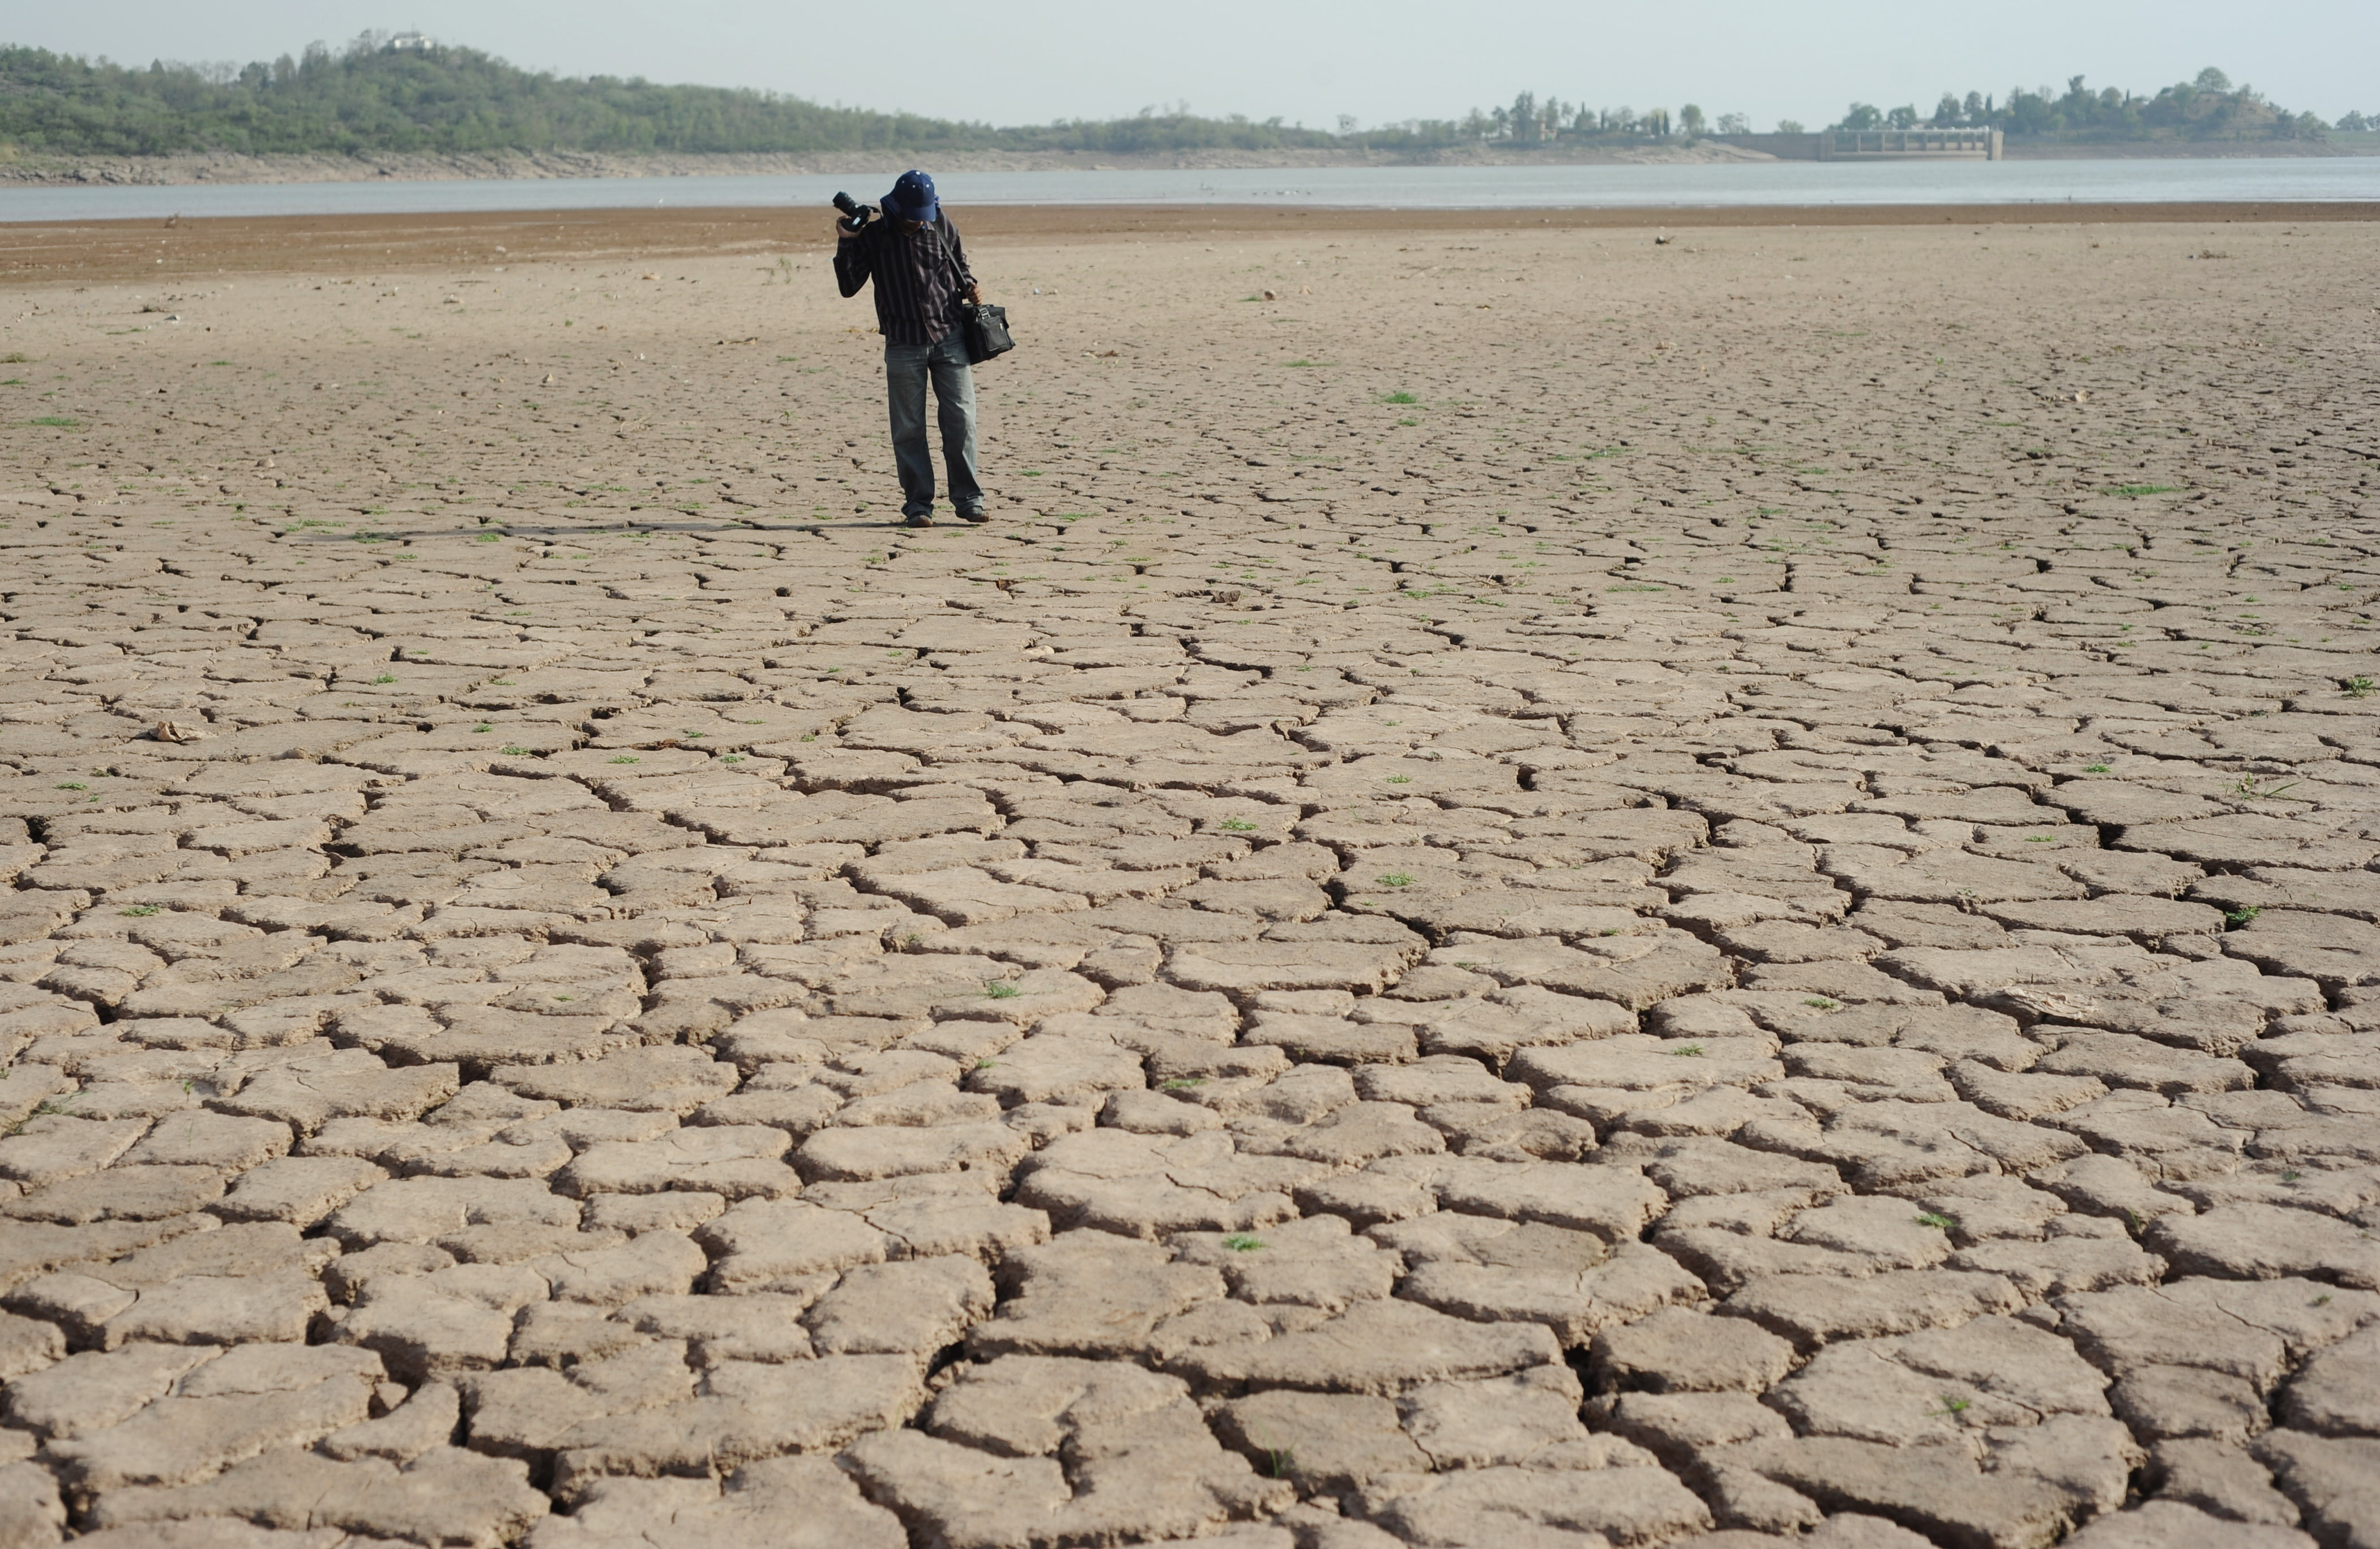 """A Pakistani photographer takes pictures of a dry portion of the Rawal Dam in Islamabad on June 22, 2010. The federal capital is facing a severe water shortage due to a drought. Pakistan is facing a """"raging"""" water crisis that if managed poorly could mean Pakistan would run out of water in several decades, experts say, leading to mass starvation and possibly war, a  newspaper reports said.  AFP PHOTO/Farooq NAEEM (Photo credit should read FAROOQ NAEEM/AFP/Getty Images)"""